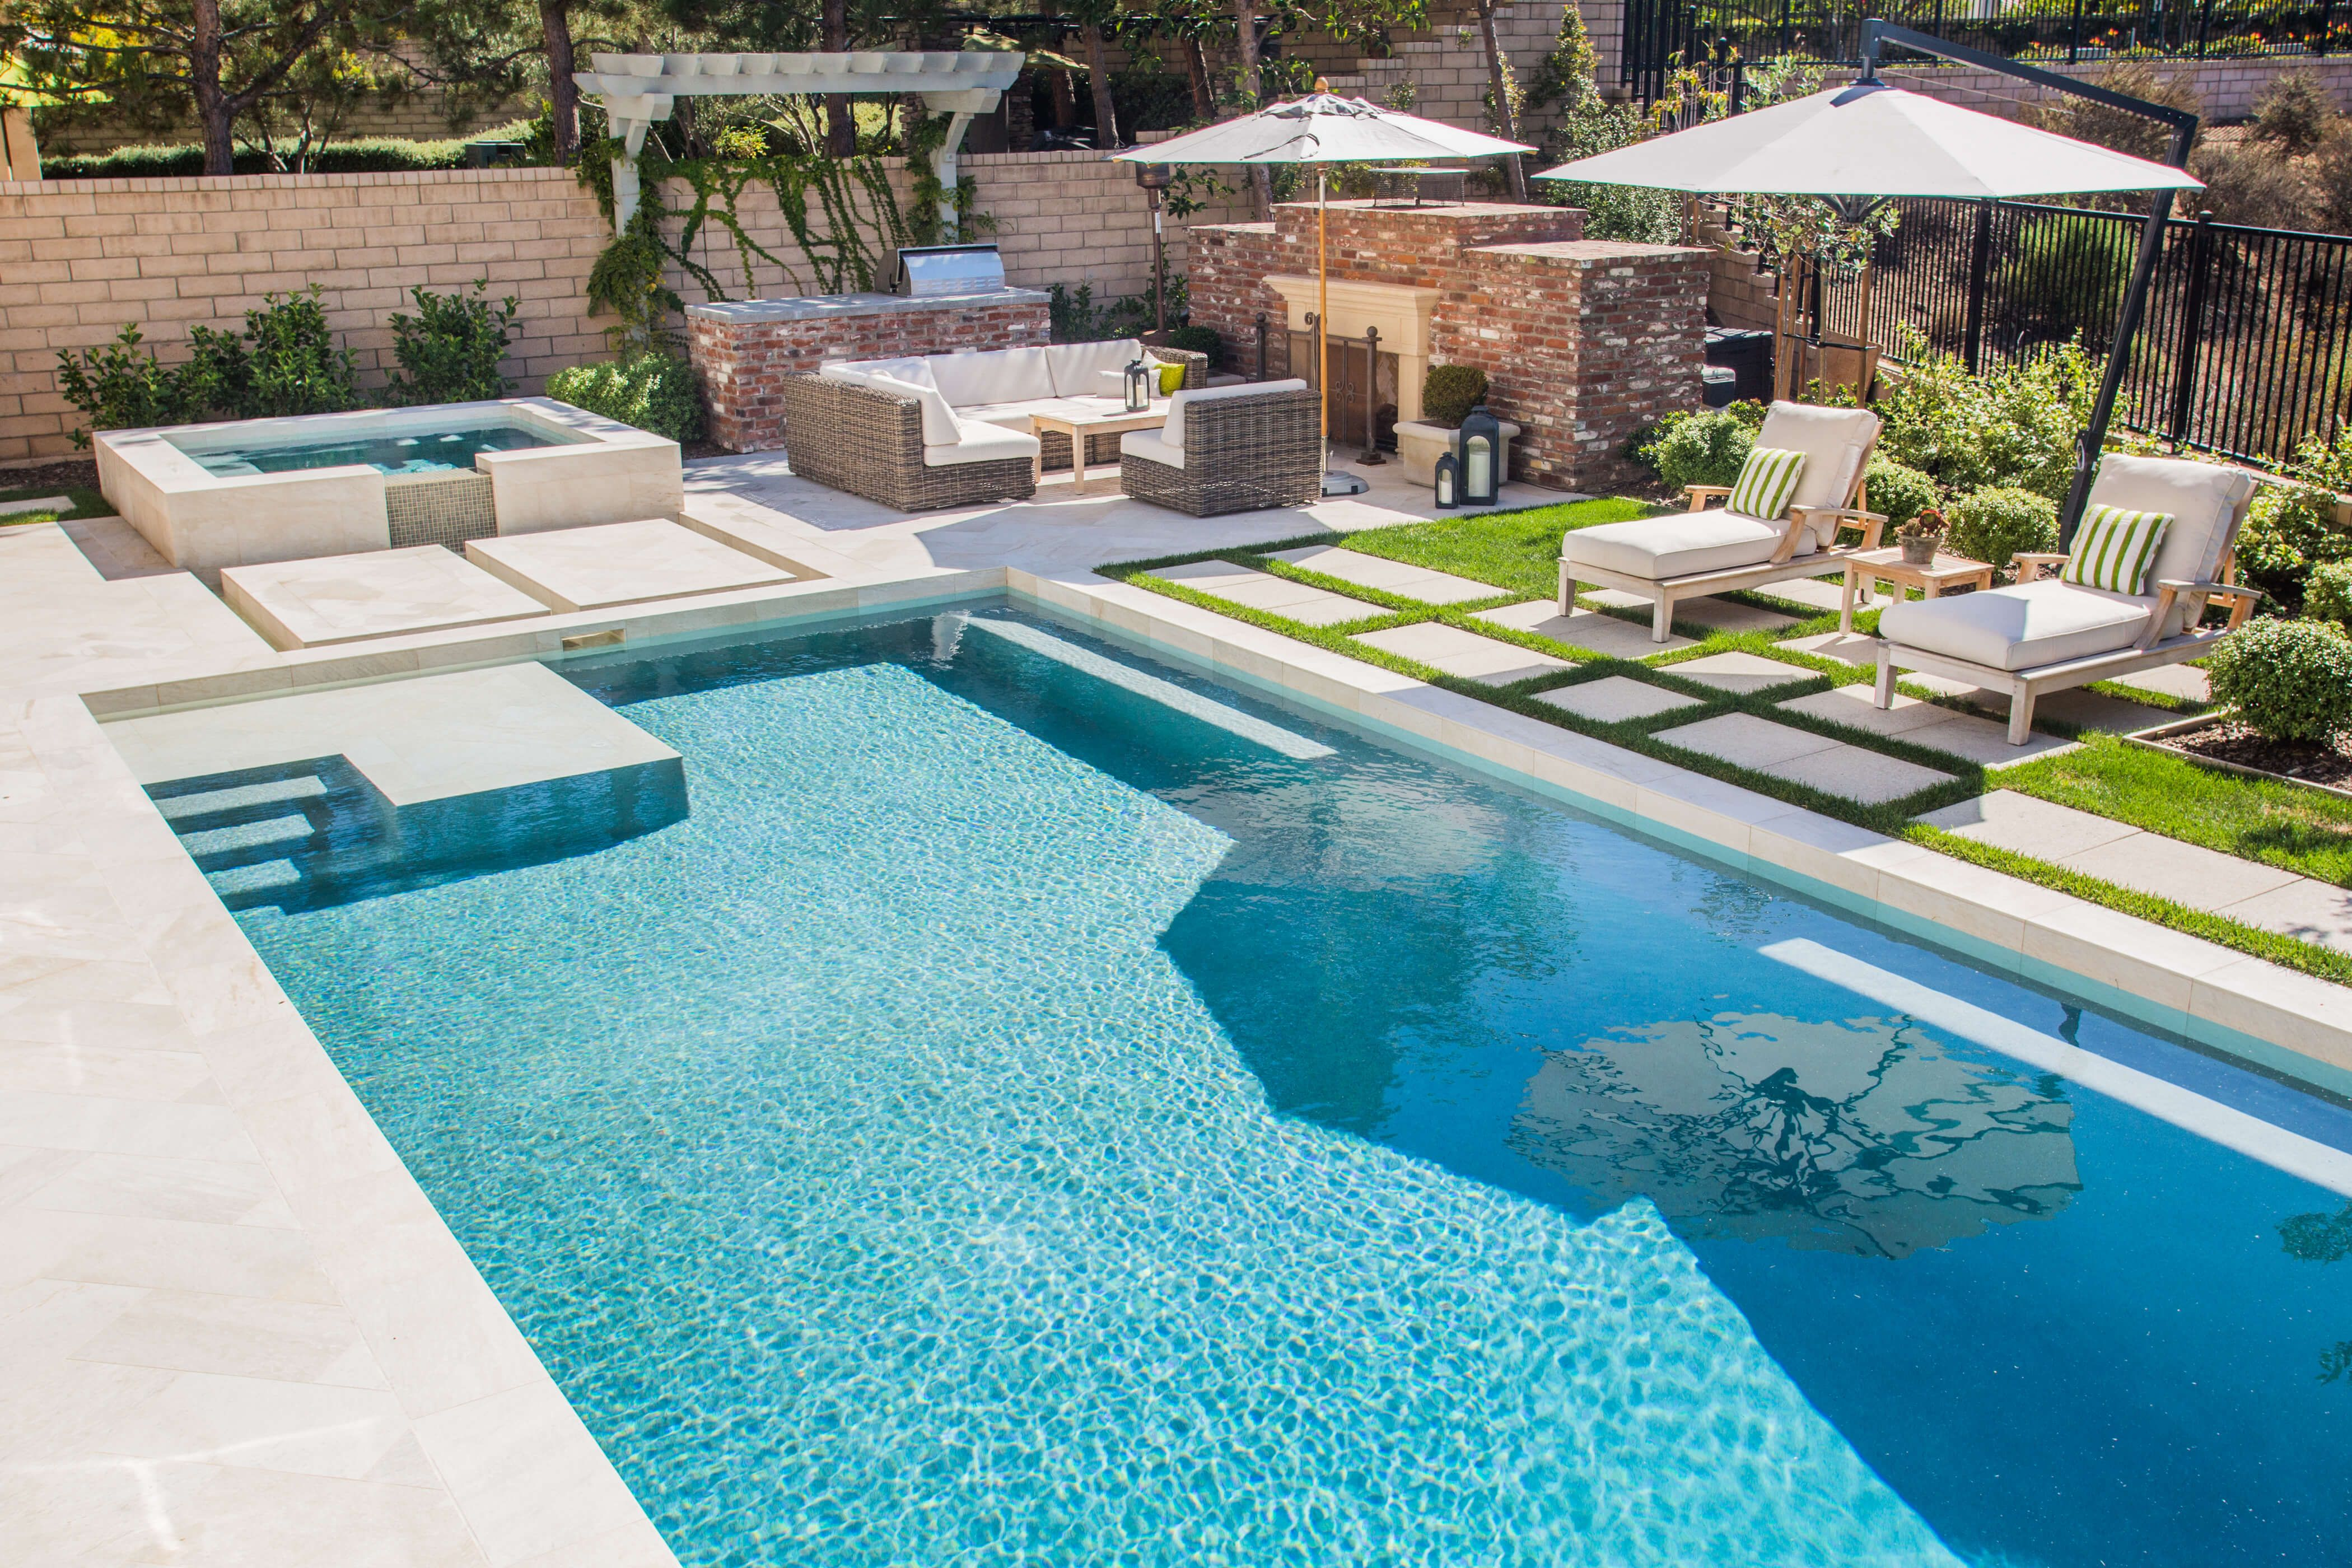 Carmel Valley Modern Pool And Spa With Sharp Edges 2 Modern Pool